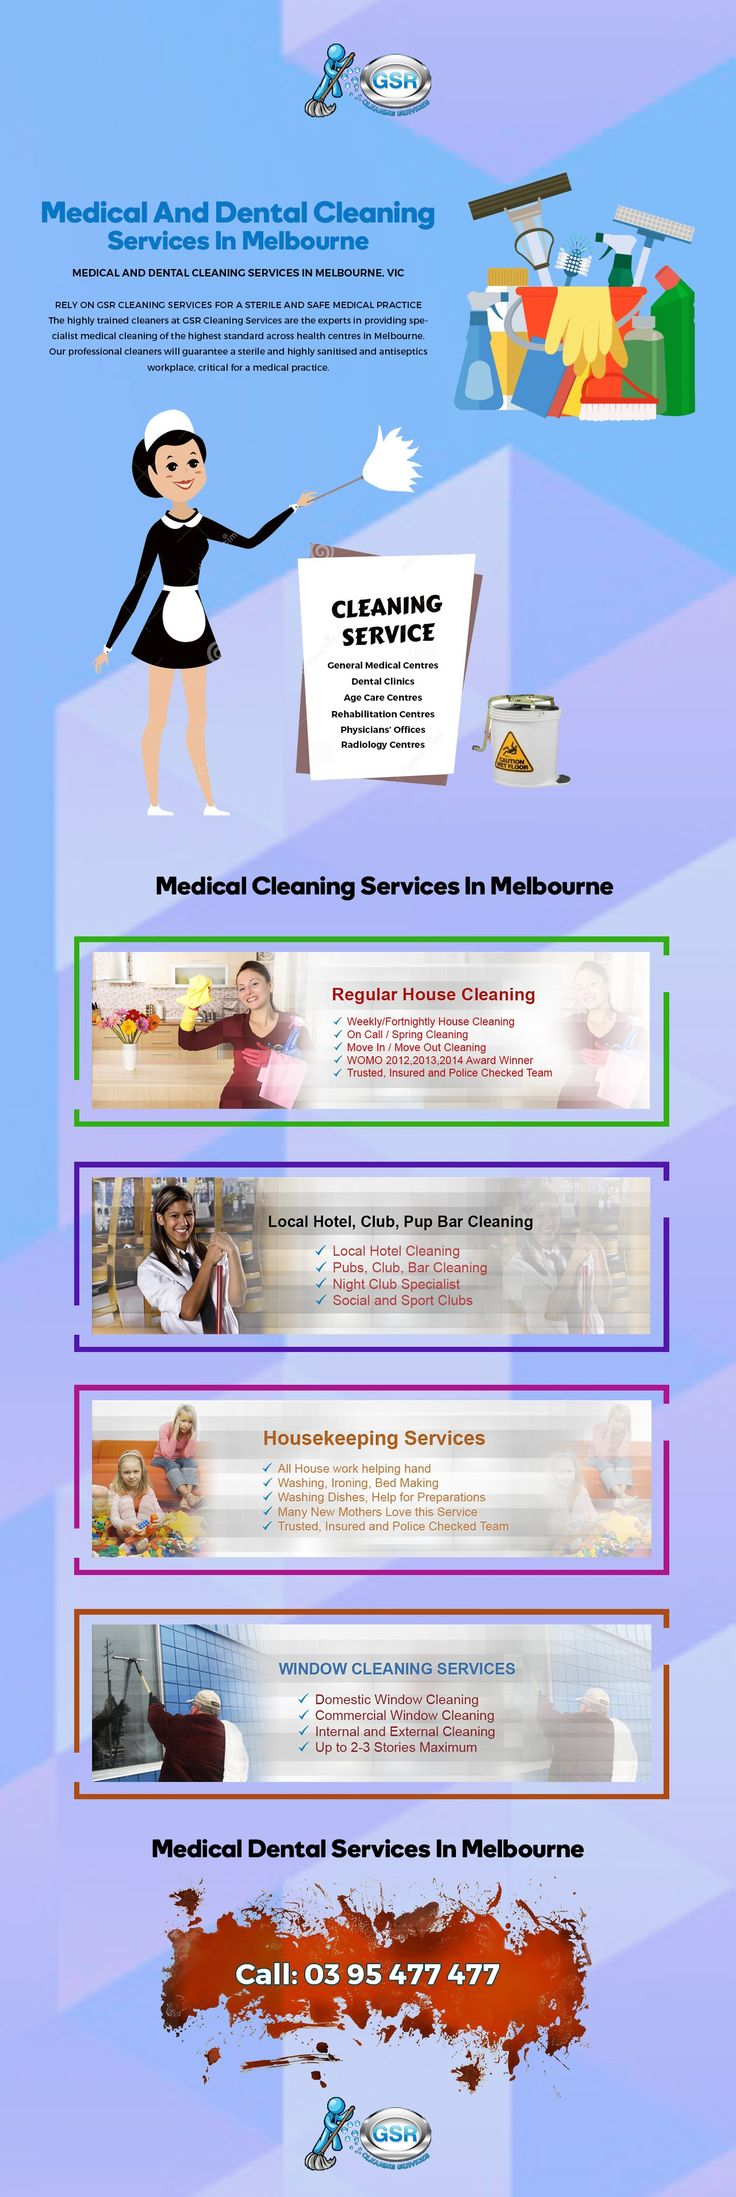 The highly trained cleaners at GSR Cleaning Services are the experts in providing specialist medical cleaning of the highest standard across health centres in Melbourne.